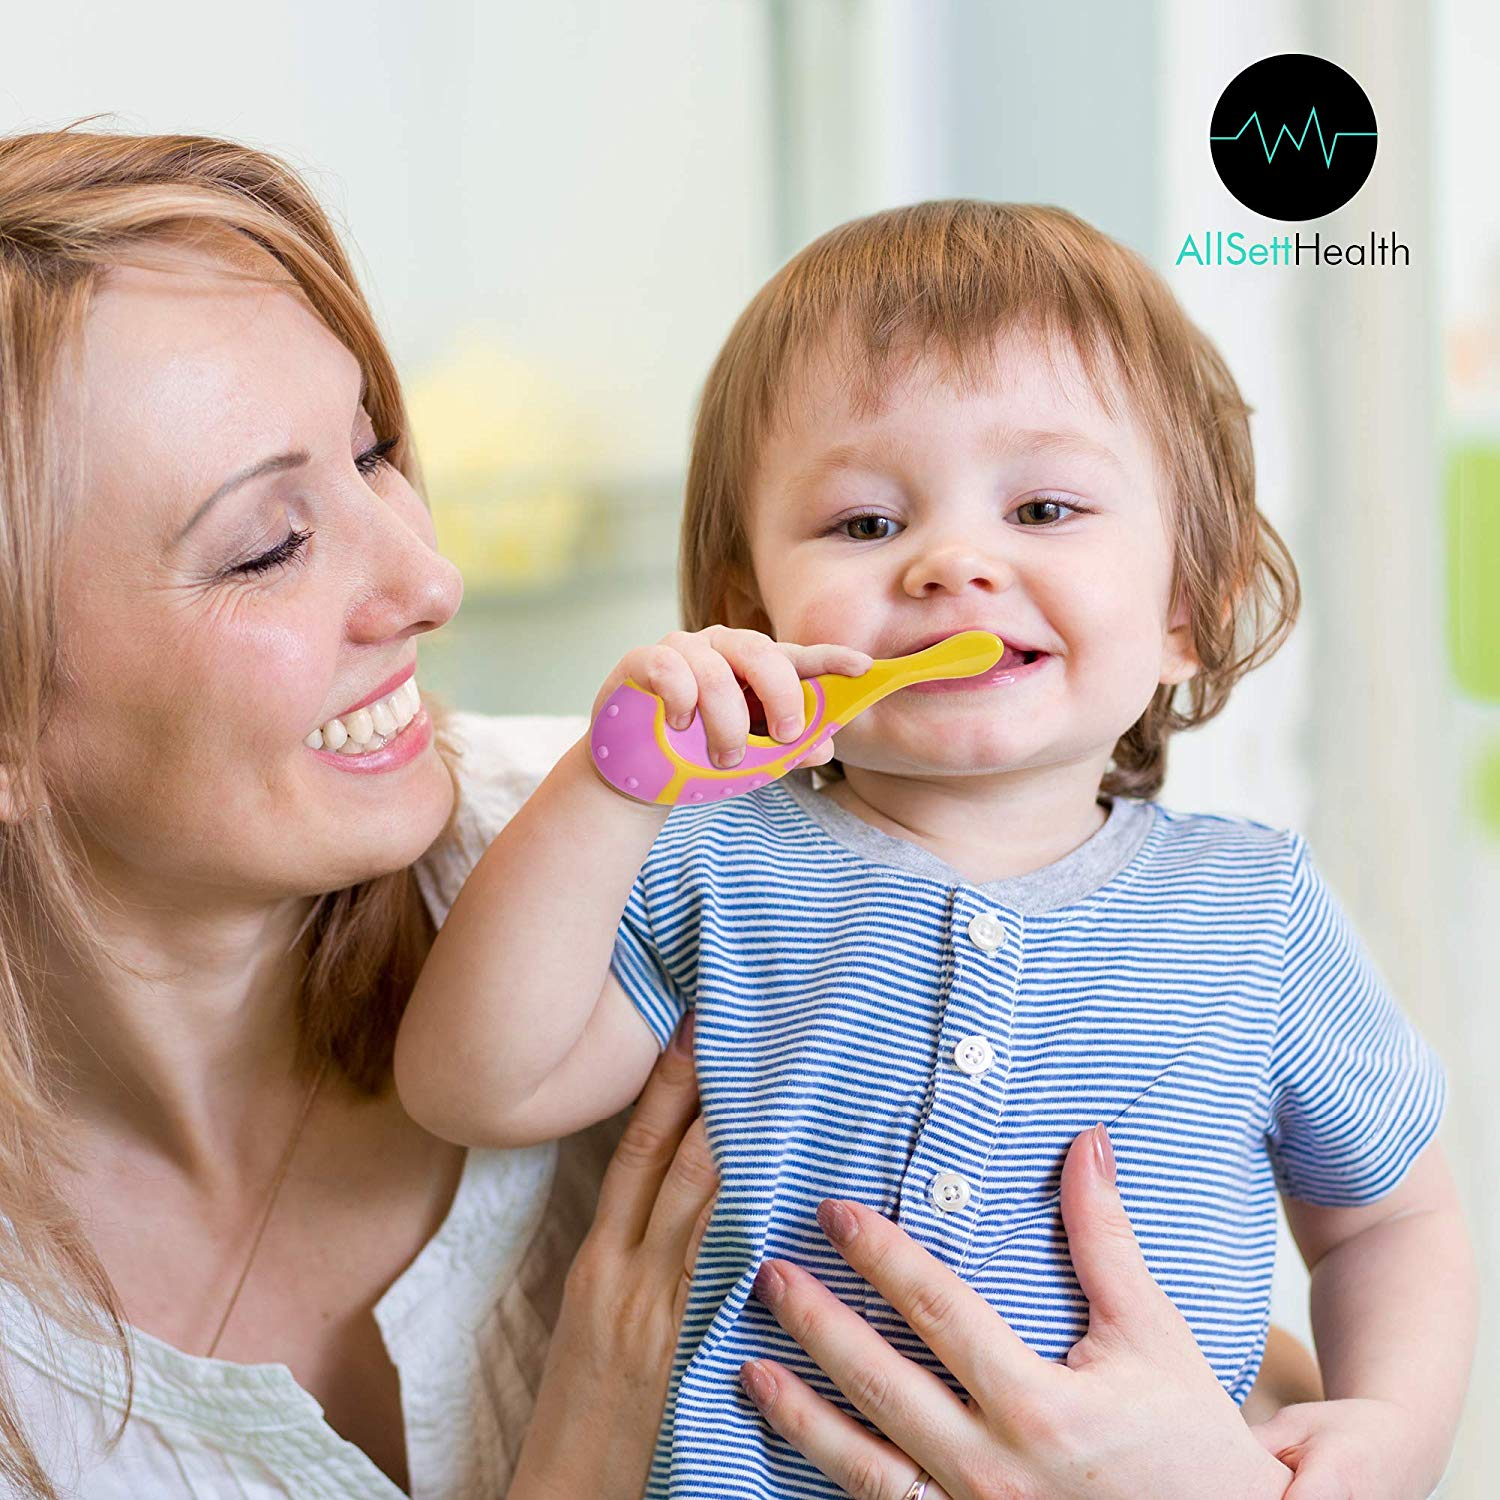 mom holding 2 year old brushing teeth